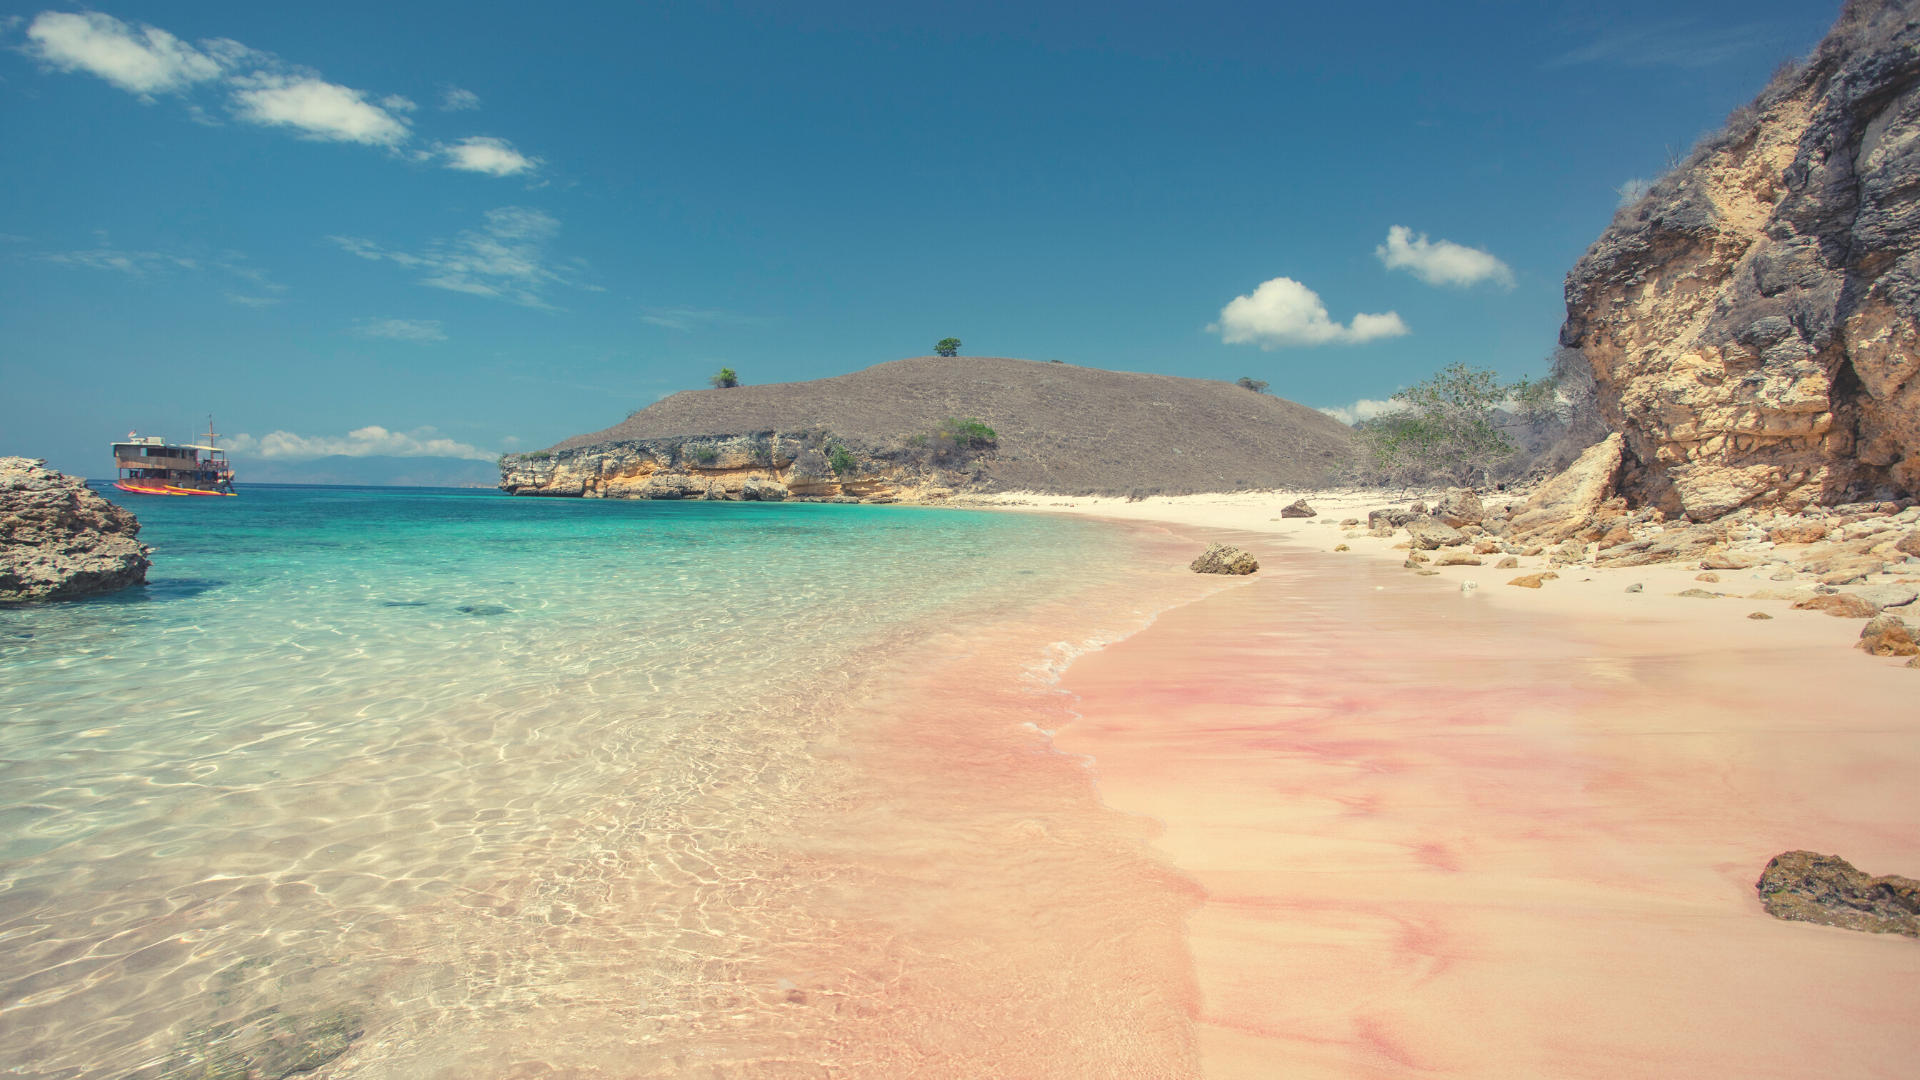 Travel with Friends at The Pink Beach, Komodo National Park, Indonesia